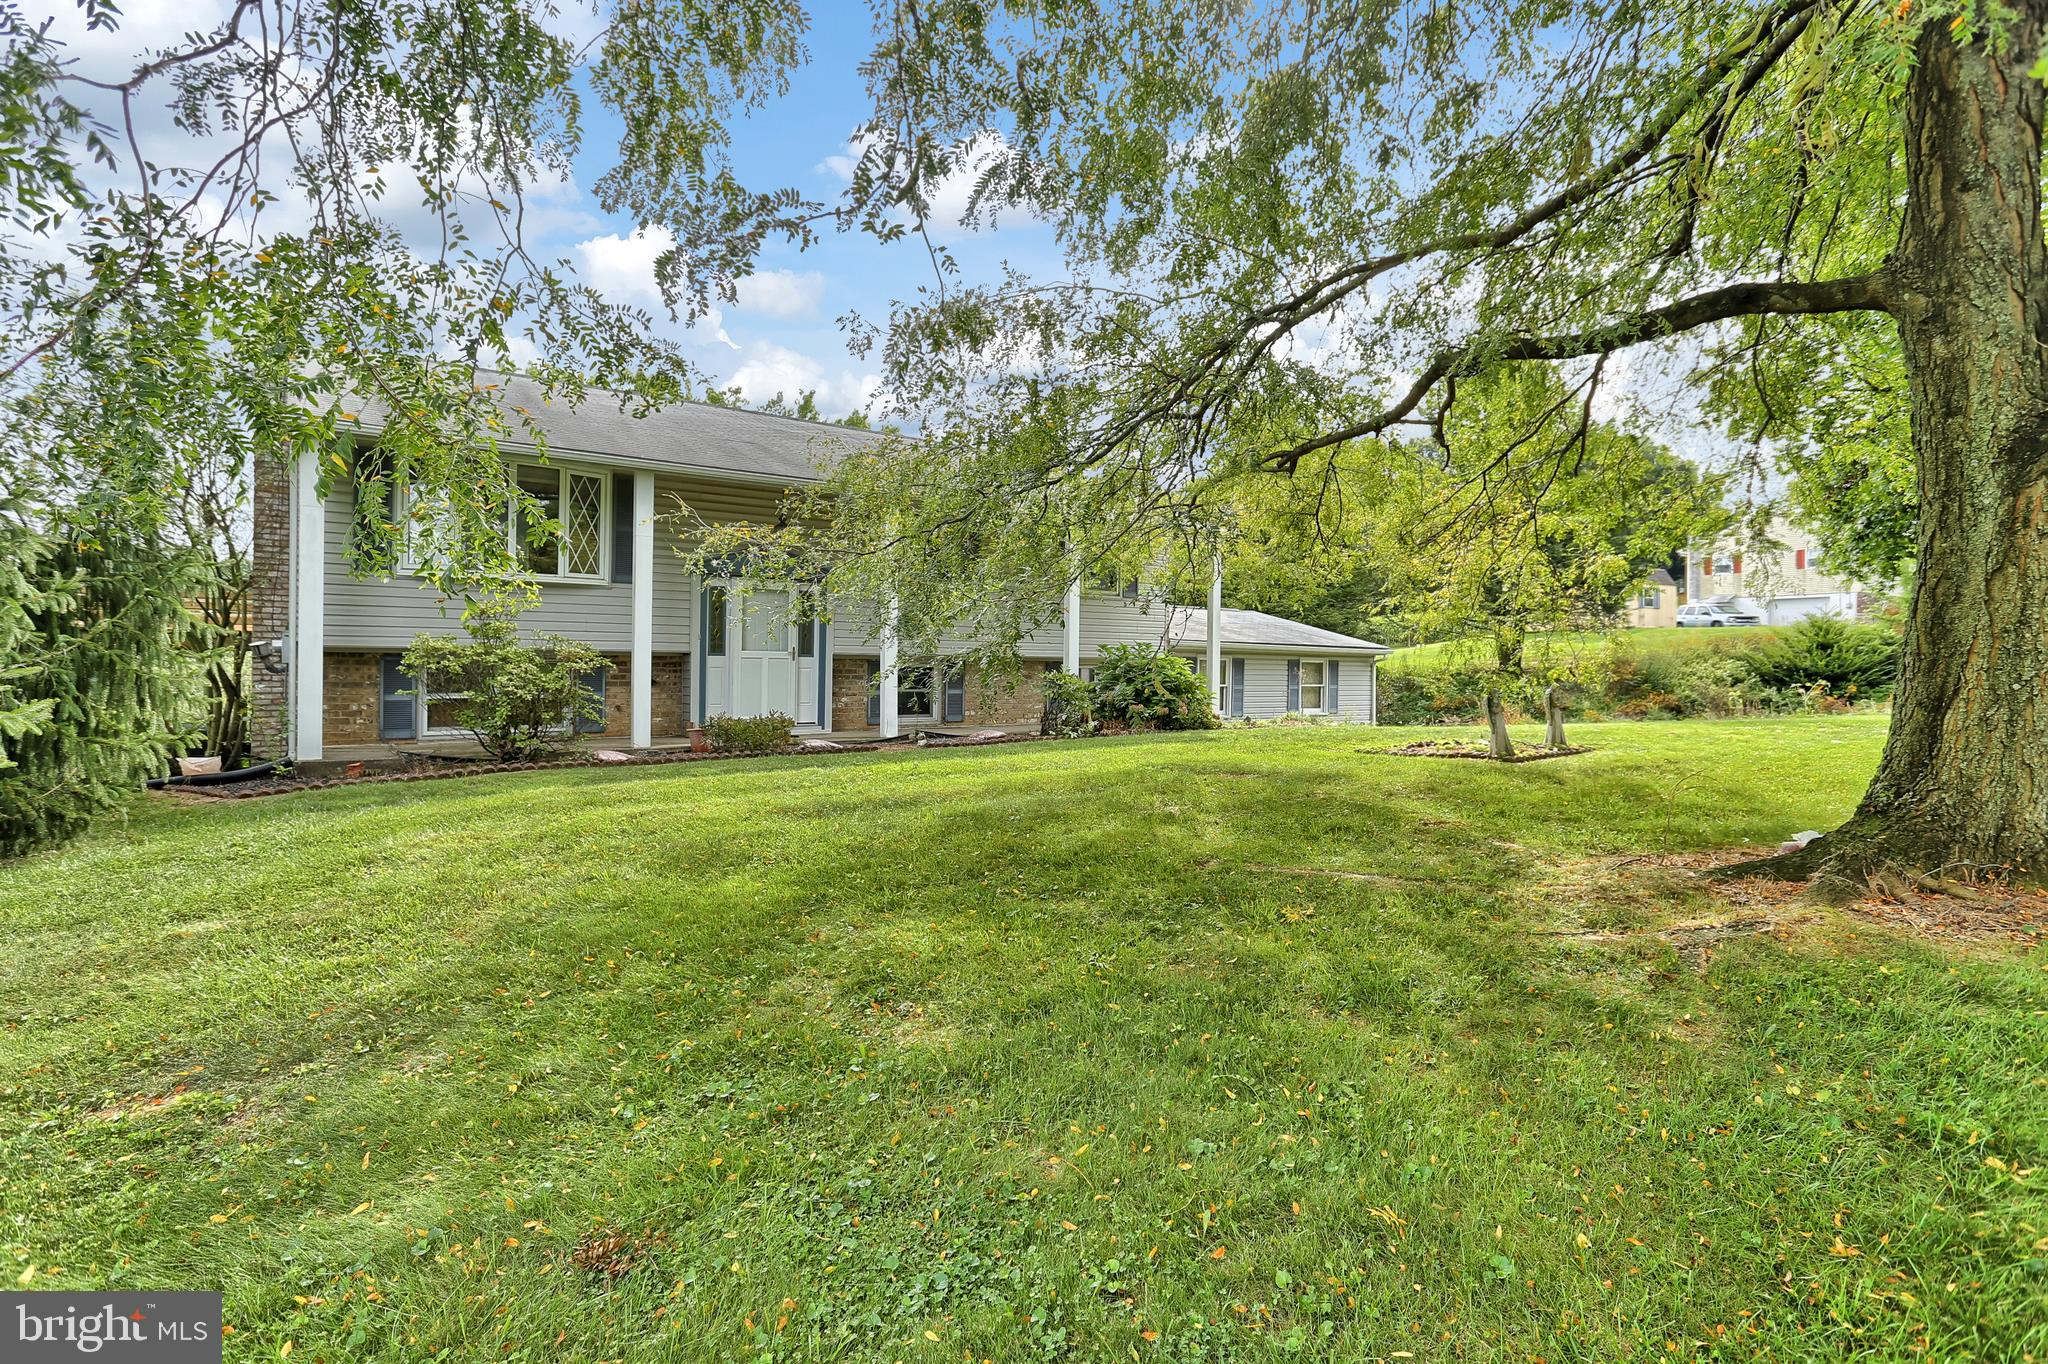 97 ORCHARD ROAD, NEW PARK, PA 17352